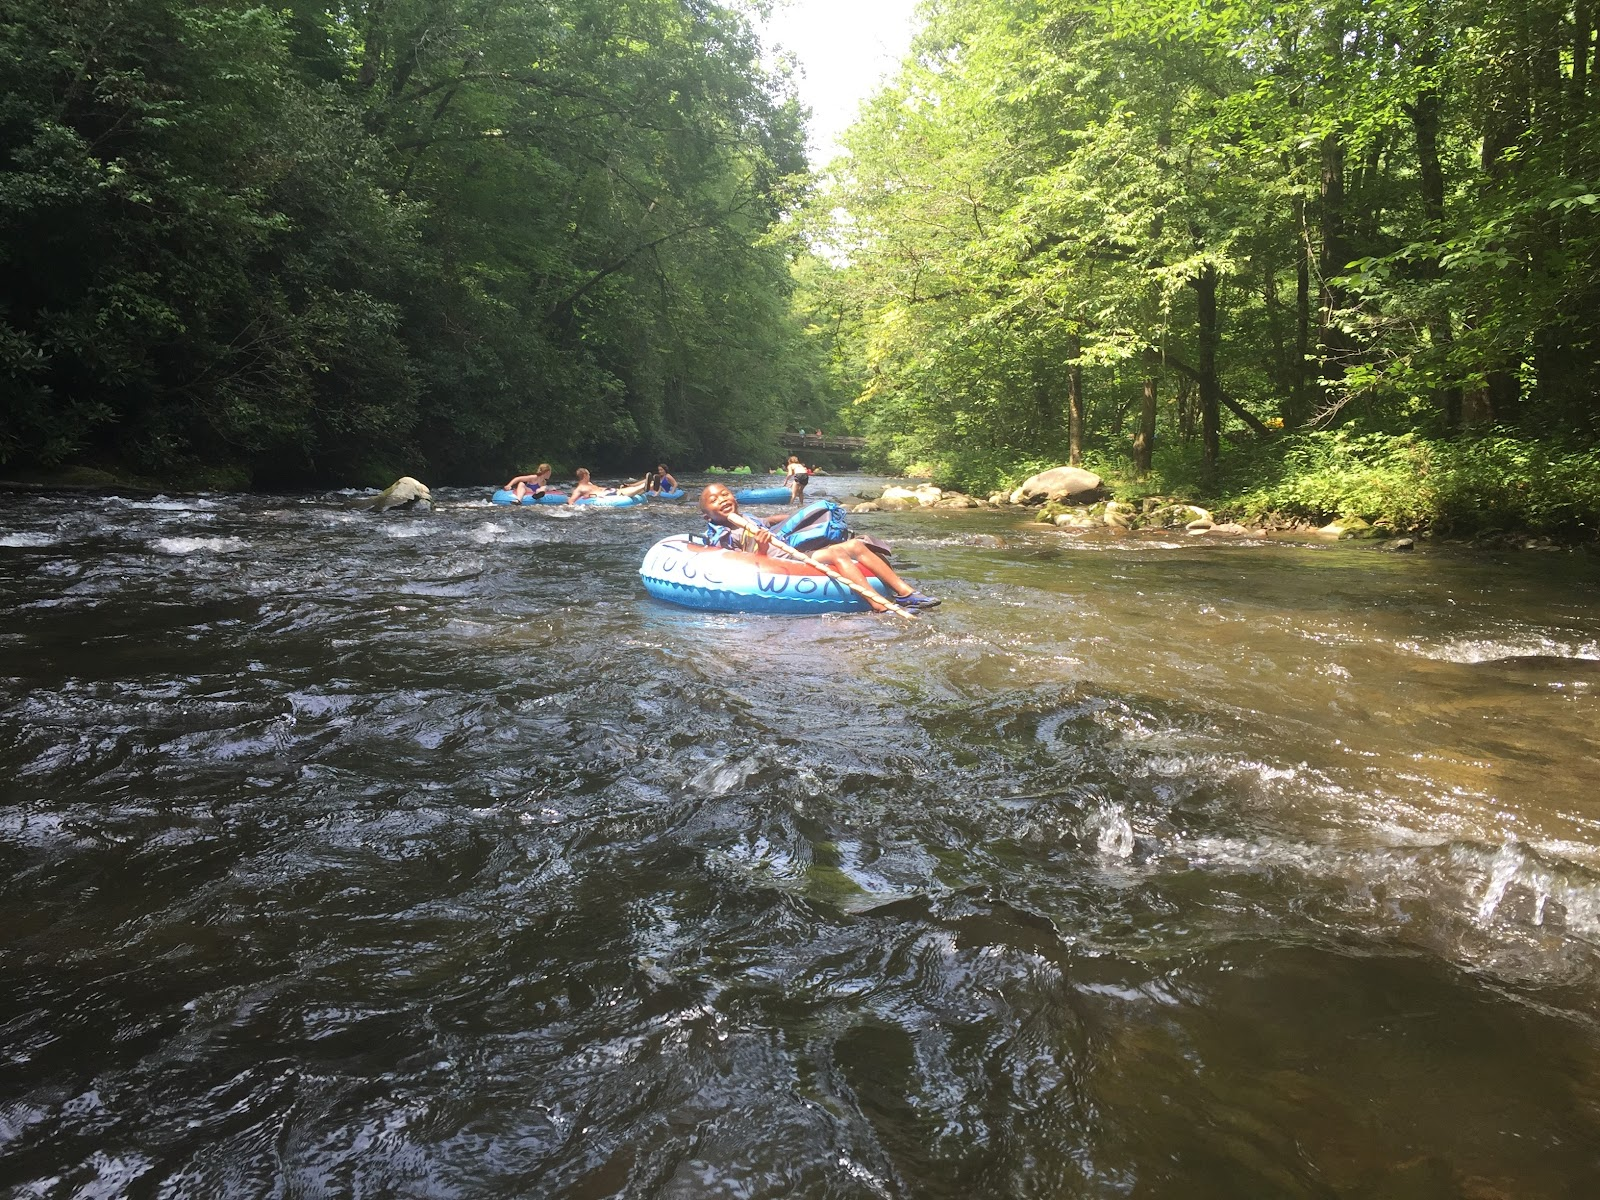 Group of people white water rafting in the Great Smoky Mountains